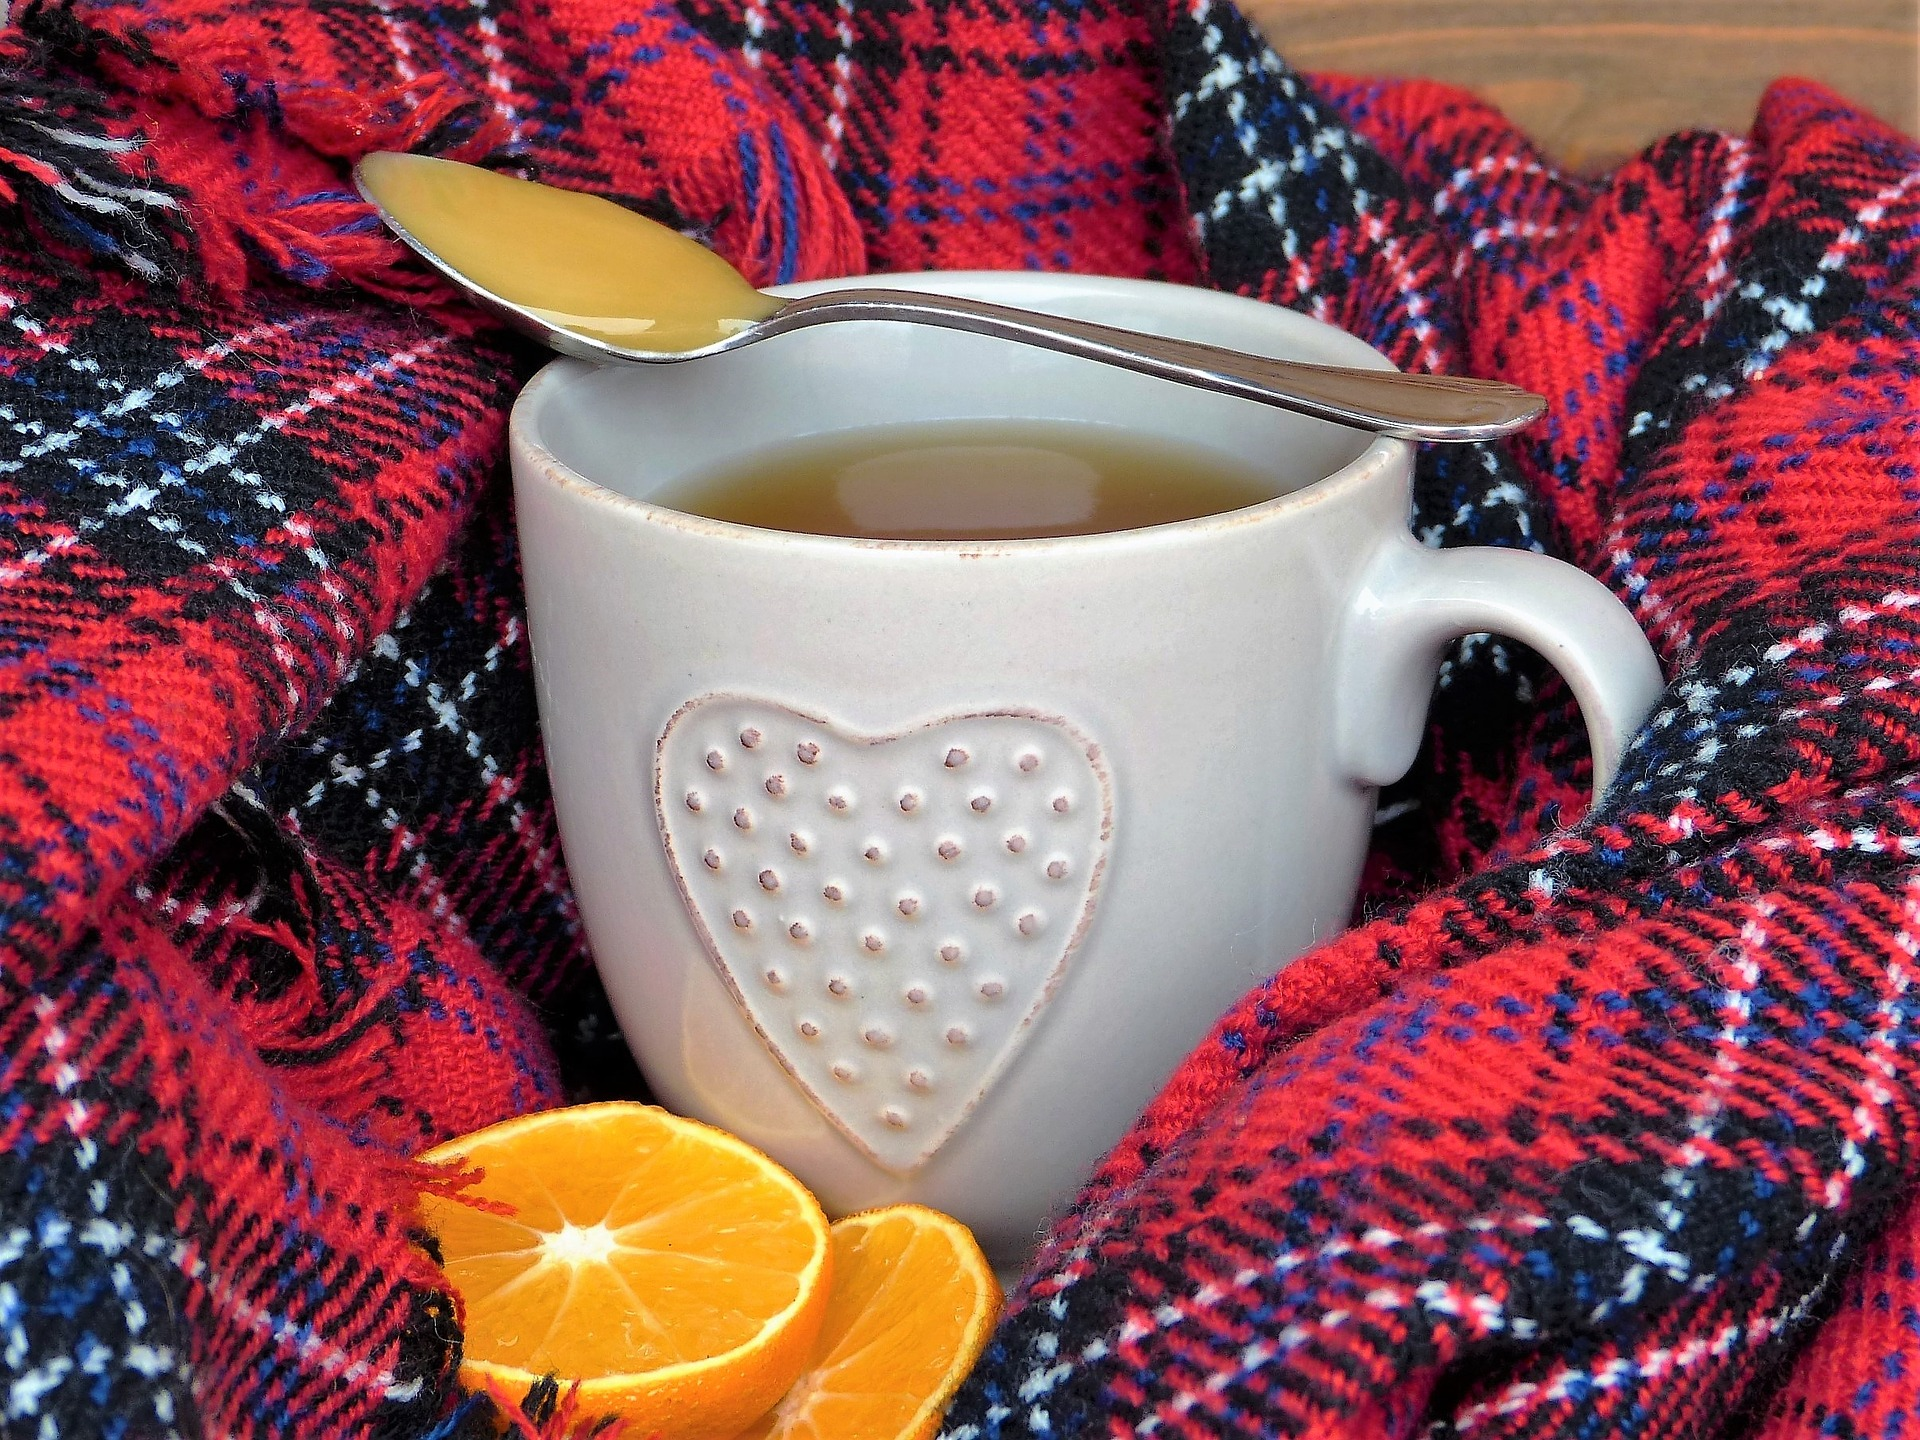 Home remedies for colds – part 1